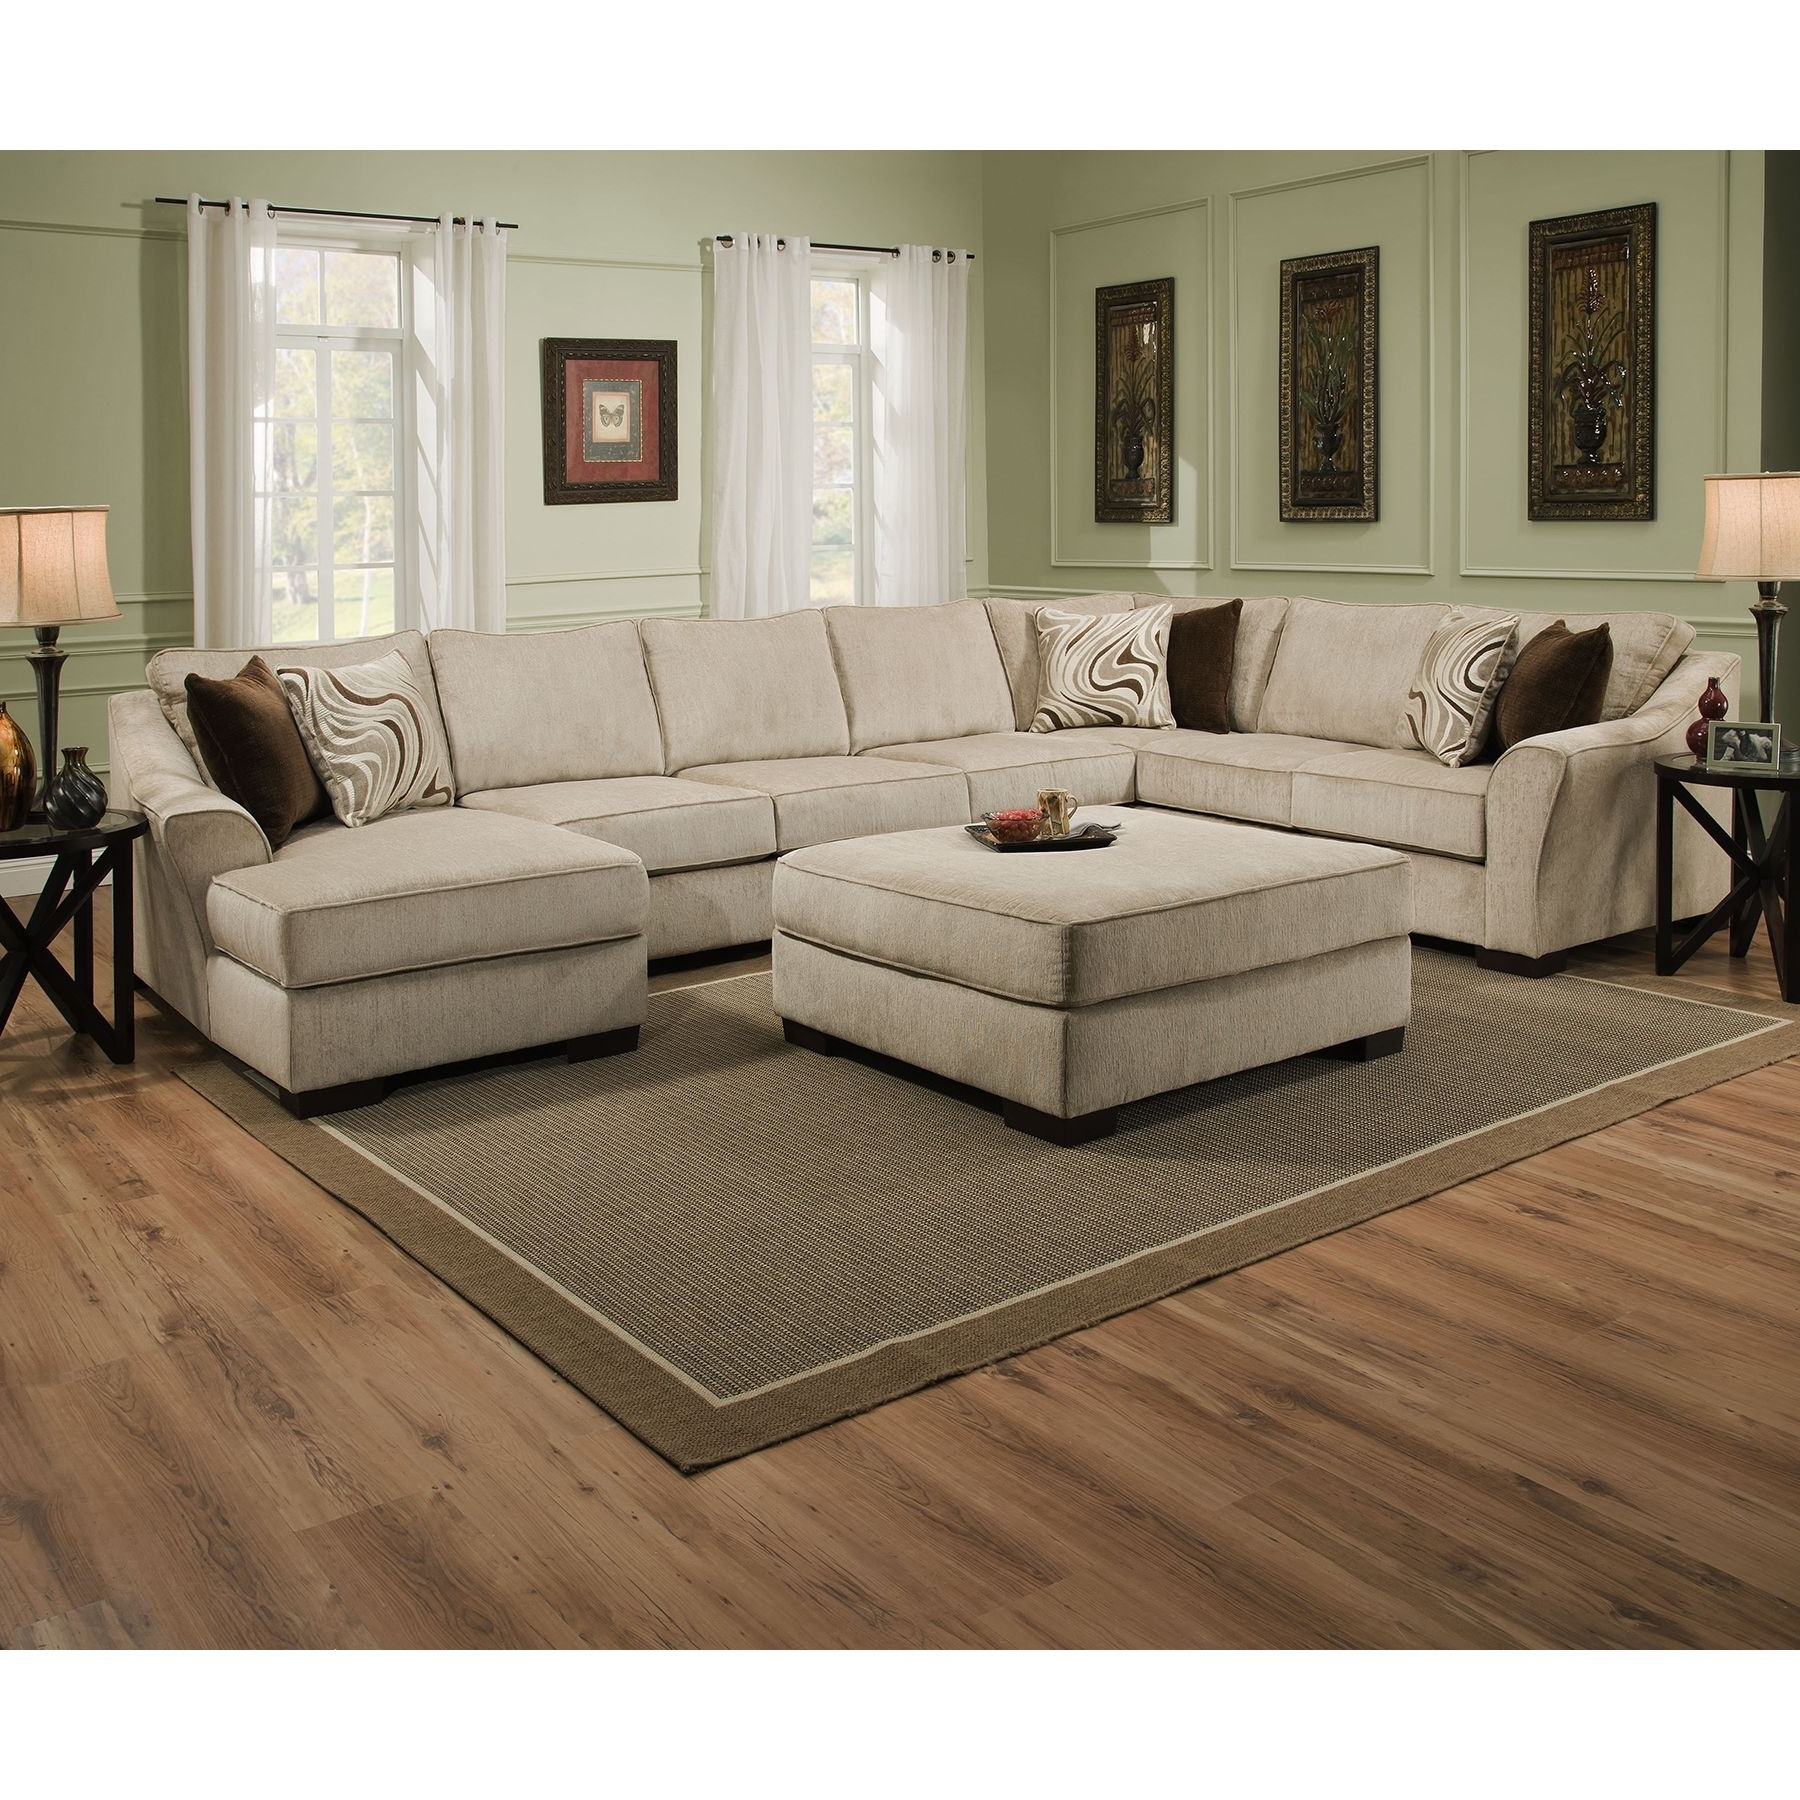 Furniture : Corner Sofa Kuwait Sectional Couch El Paso Sectional With Well Liked Halifax Sectional Sofas (View 6 of 20)